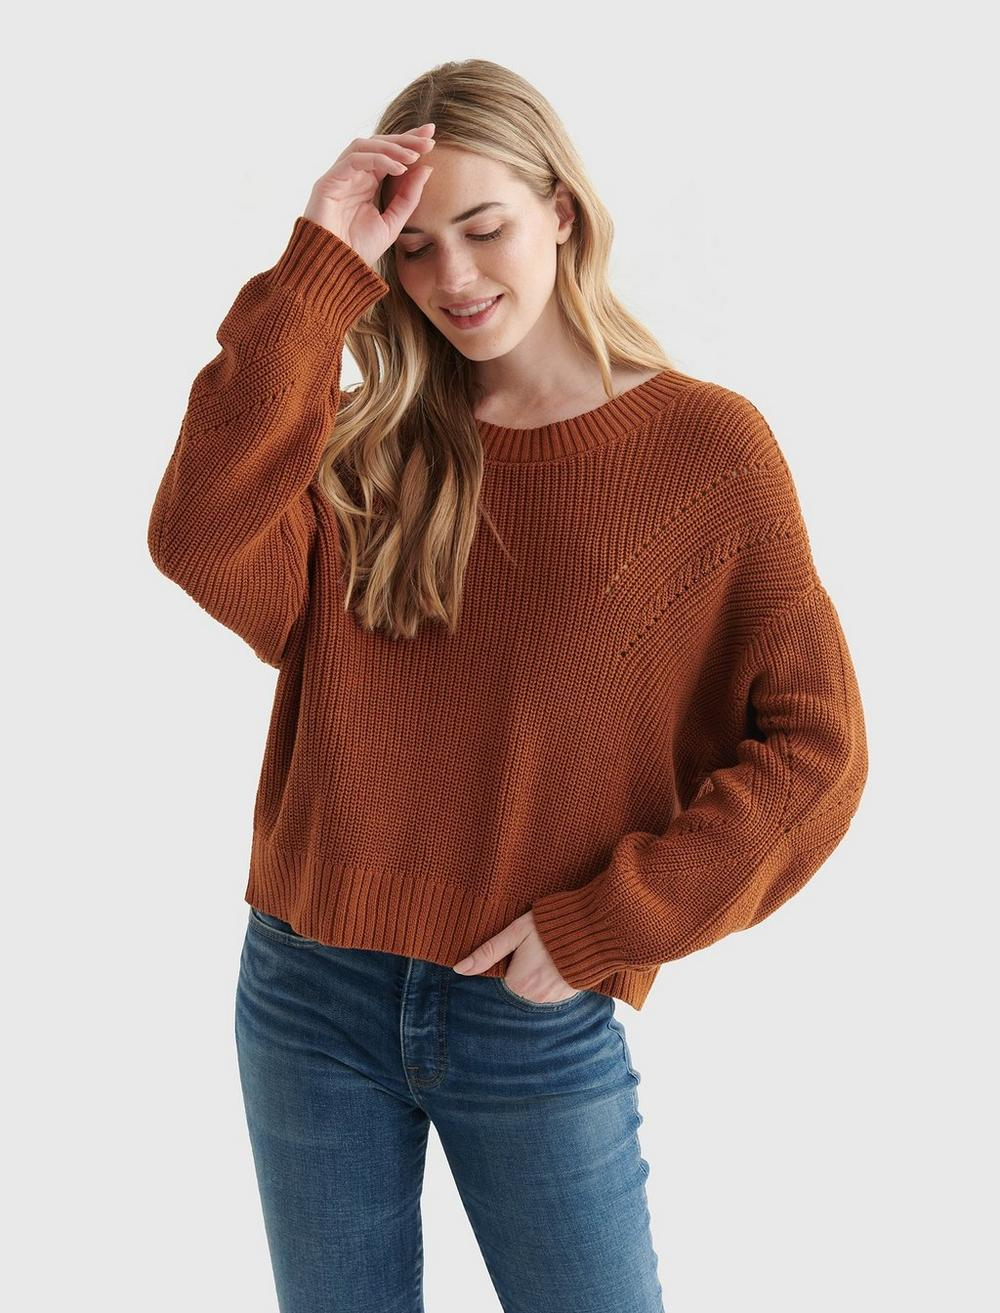 CROPPED RIB-KNIT PULLOVER REVERSIBLE SWEATER, image 1